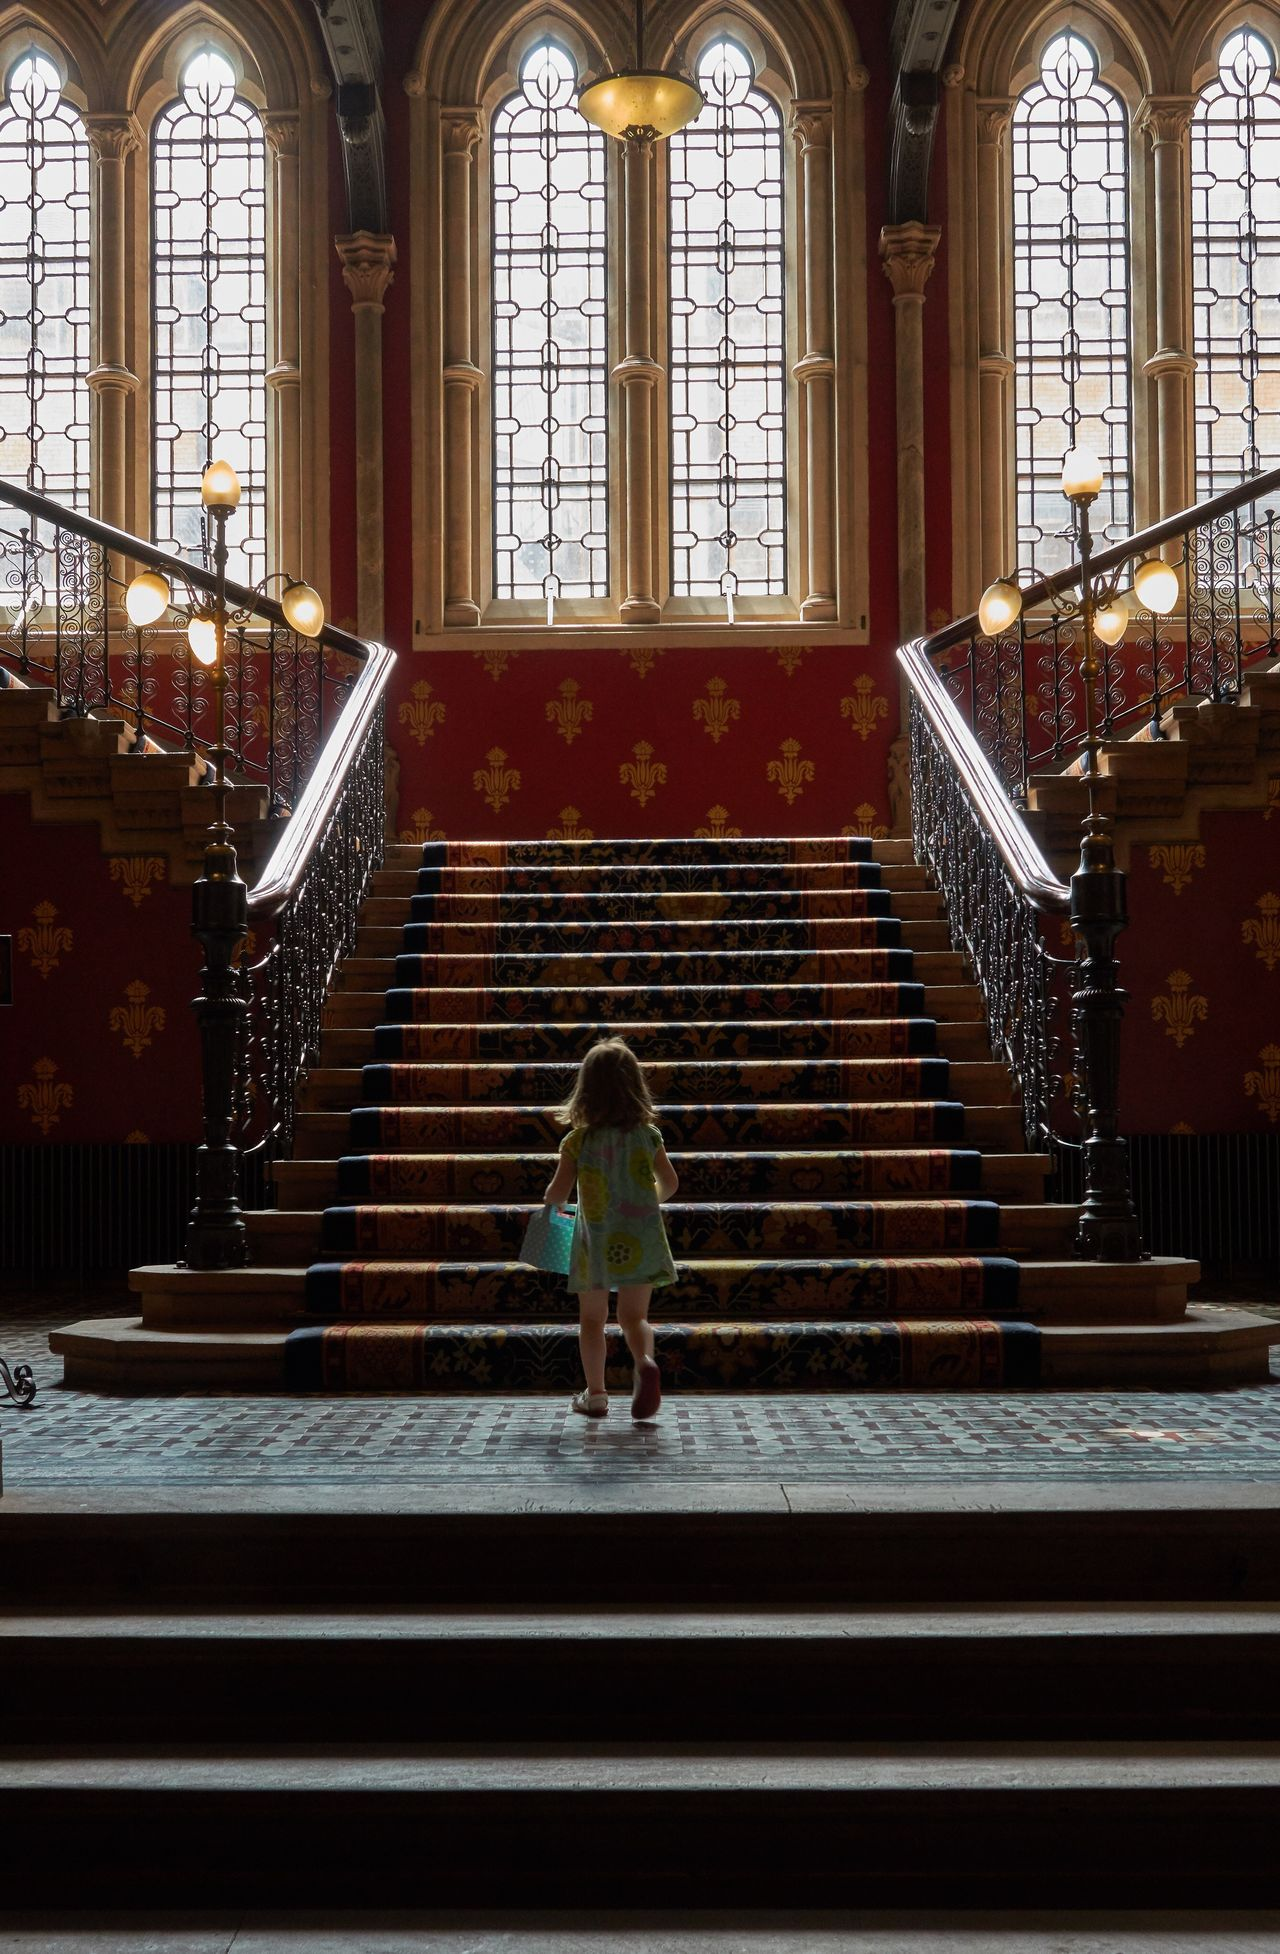 Sueños de Princesa. Little Miss. Staircase Steps Steps And Staircases Indoors  Stairs Architecture One Person Day Kid Sant Pancras Girl